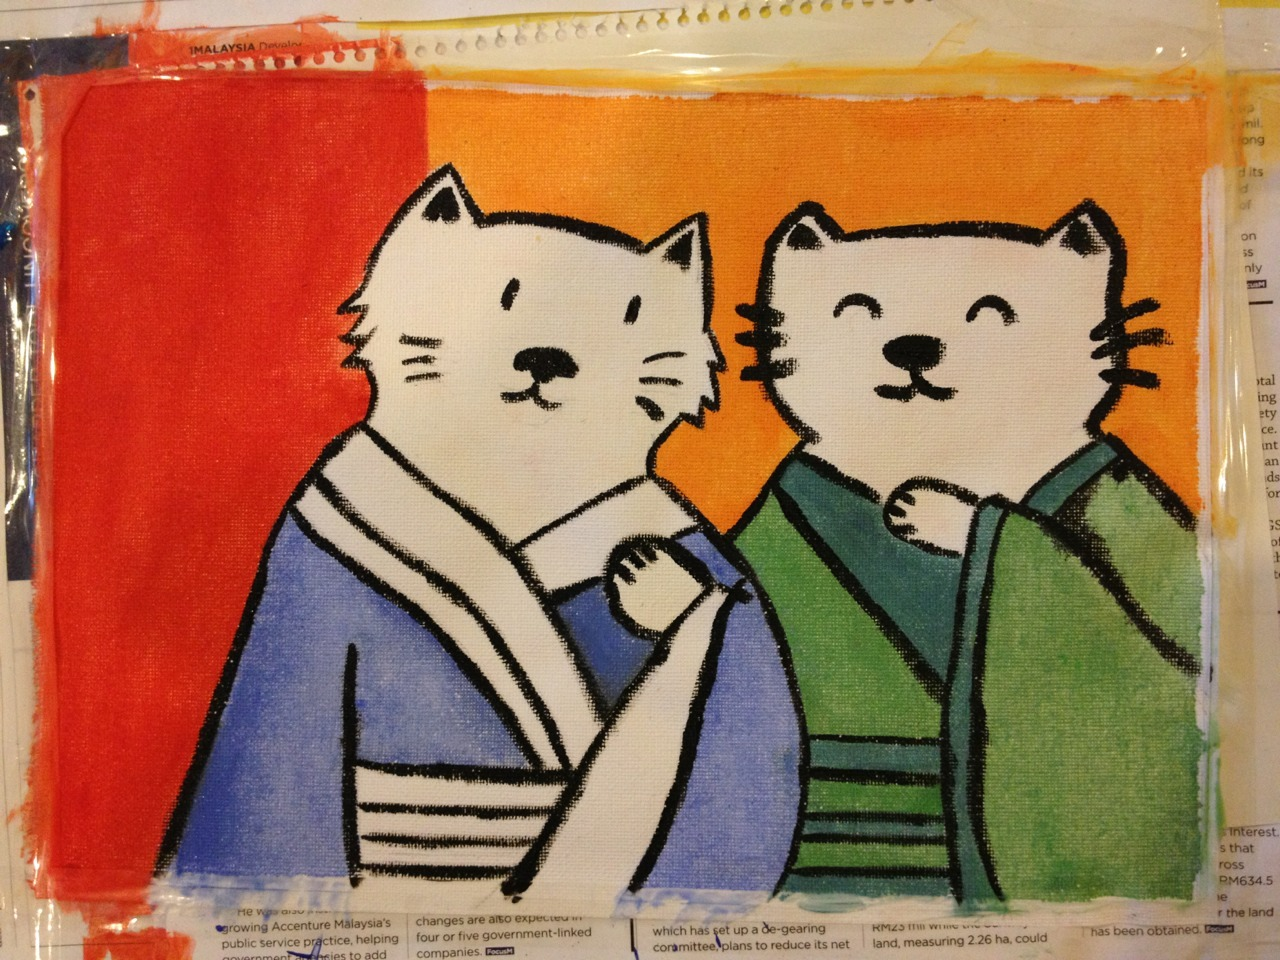 'Japanese Cats Gossip', Acrylic on canvas. It was a painful process, and strictly naive since I had no idea what to do with canvas (and actually had to tape it down halfway while painting, since I didn't know these things curled as you color!). The outlines has to be short and thick too with pitfalls along the way. But at the same time the process absorbed me so much. It made me think a great deal, and sometimes not at all. I've fallen in love with painting, I consider myself lucky to fall in love again ( after my husband). I used to worry that I have no teachers, no formal training. But I read somewhere that people struggle to find their 'innocence' or identity after art school, maybe this naïveté should be something I'm proud of. It doesn't matter. It is peaceful, all of it. Even the imperfections.